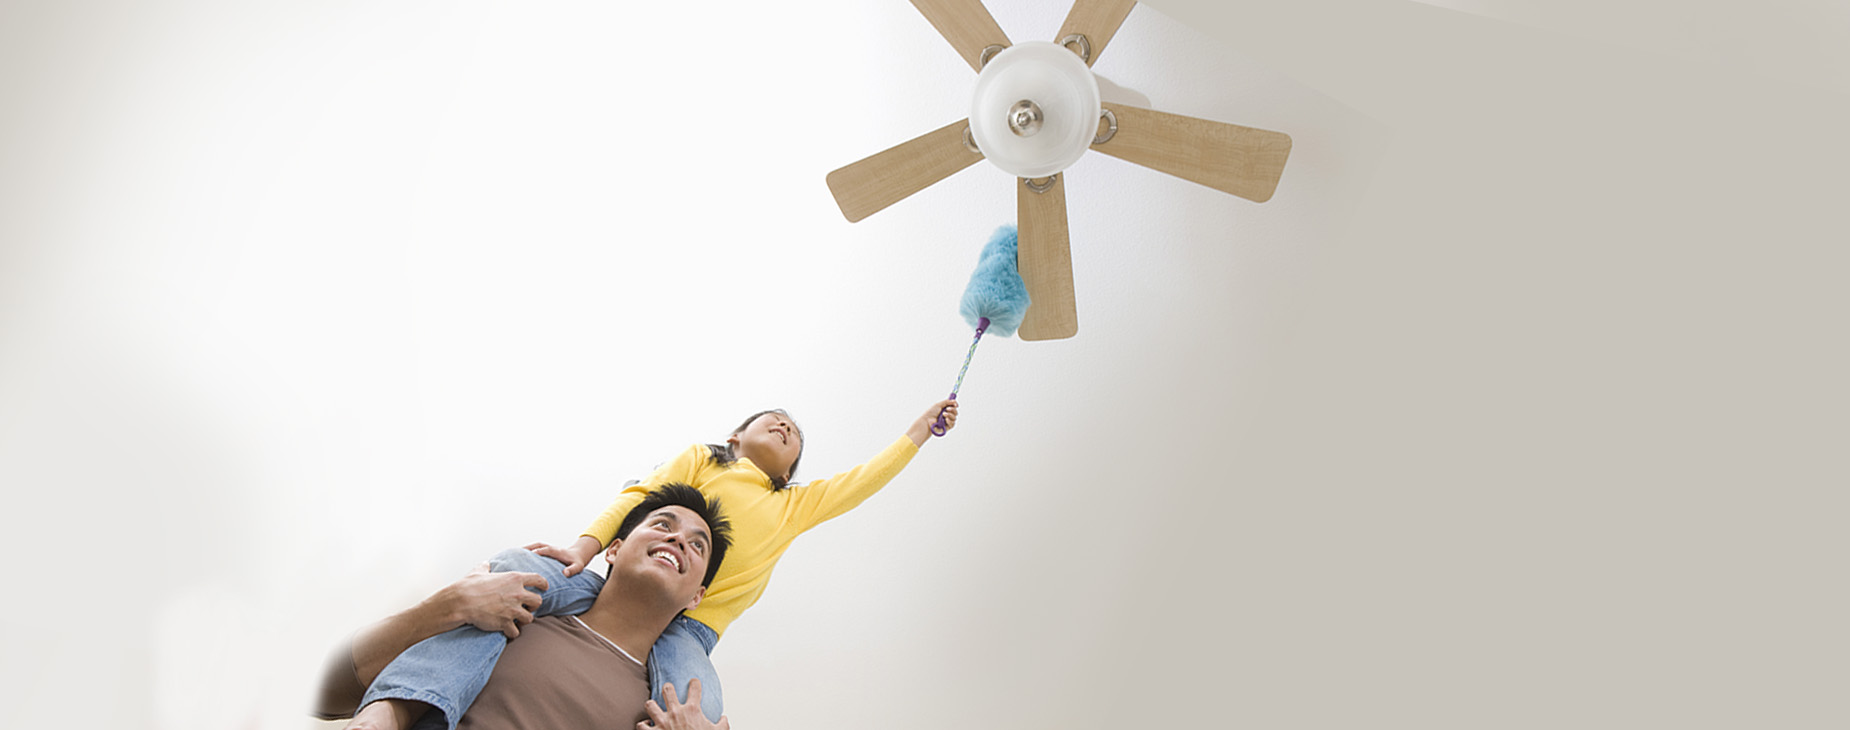 Tips for cleaning the ceiling fans 05 mar 2018 aloadofball Gallery